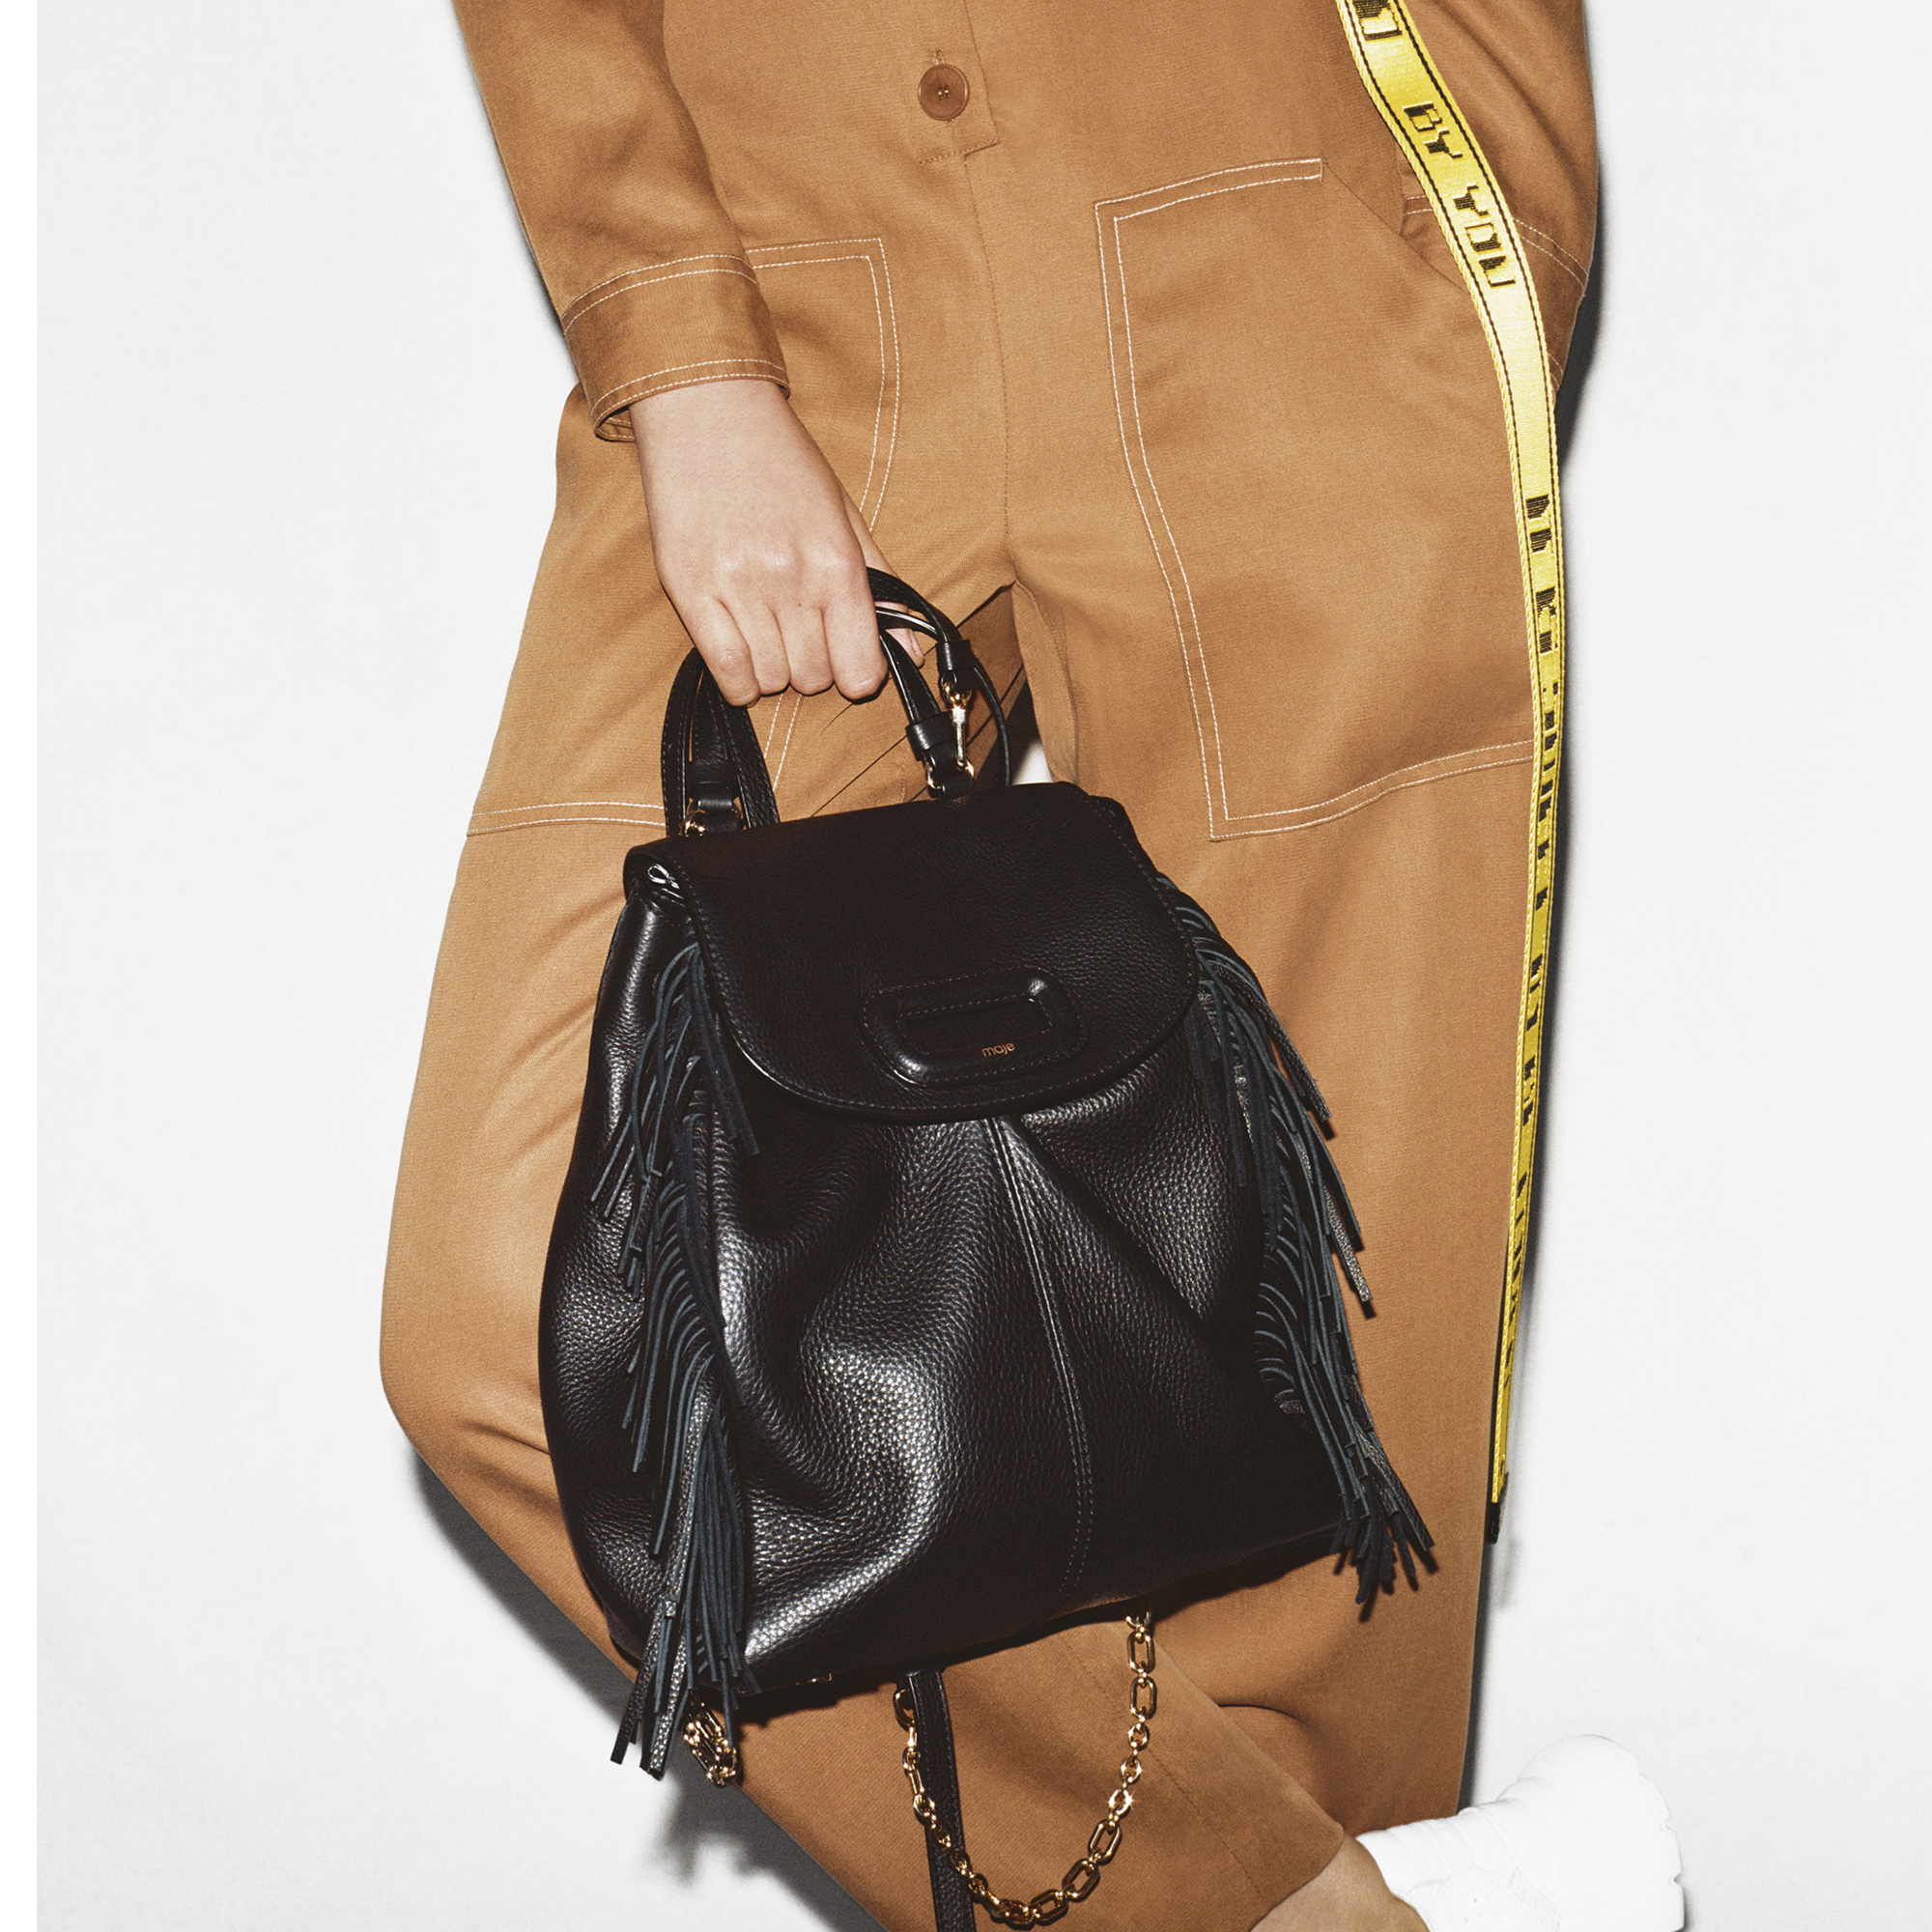 M leather backpack with chain - Black